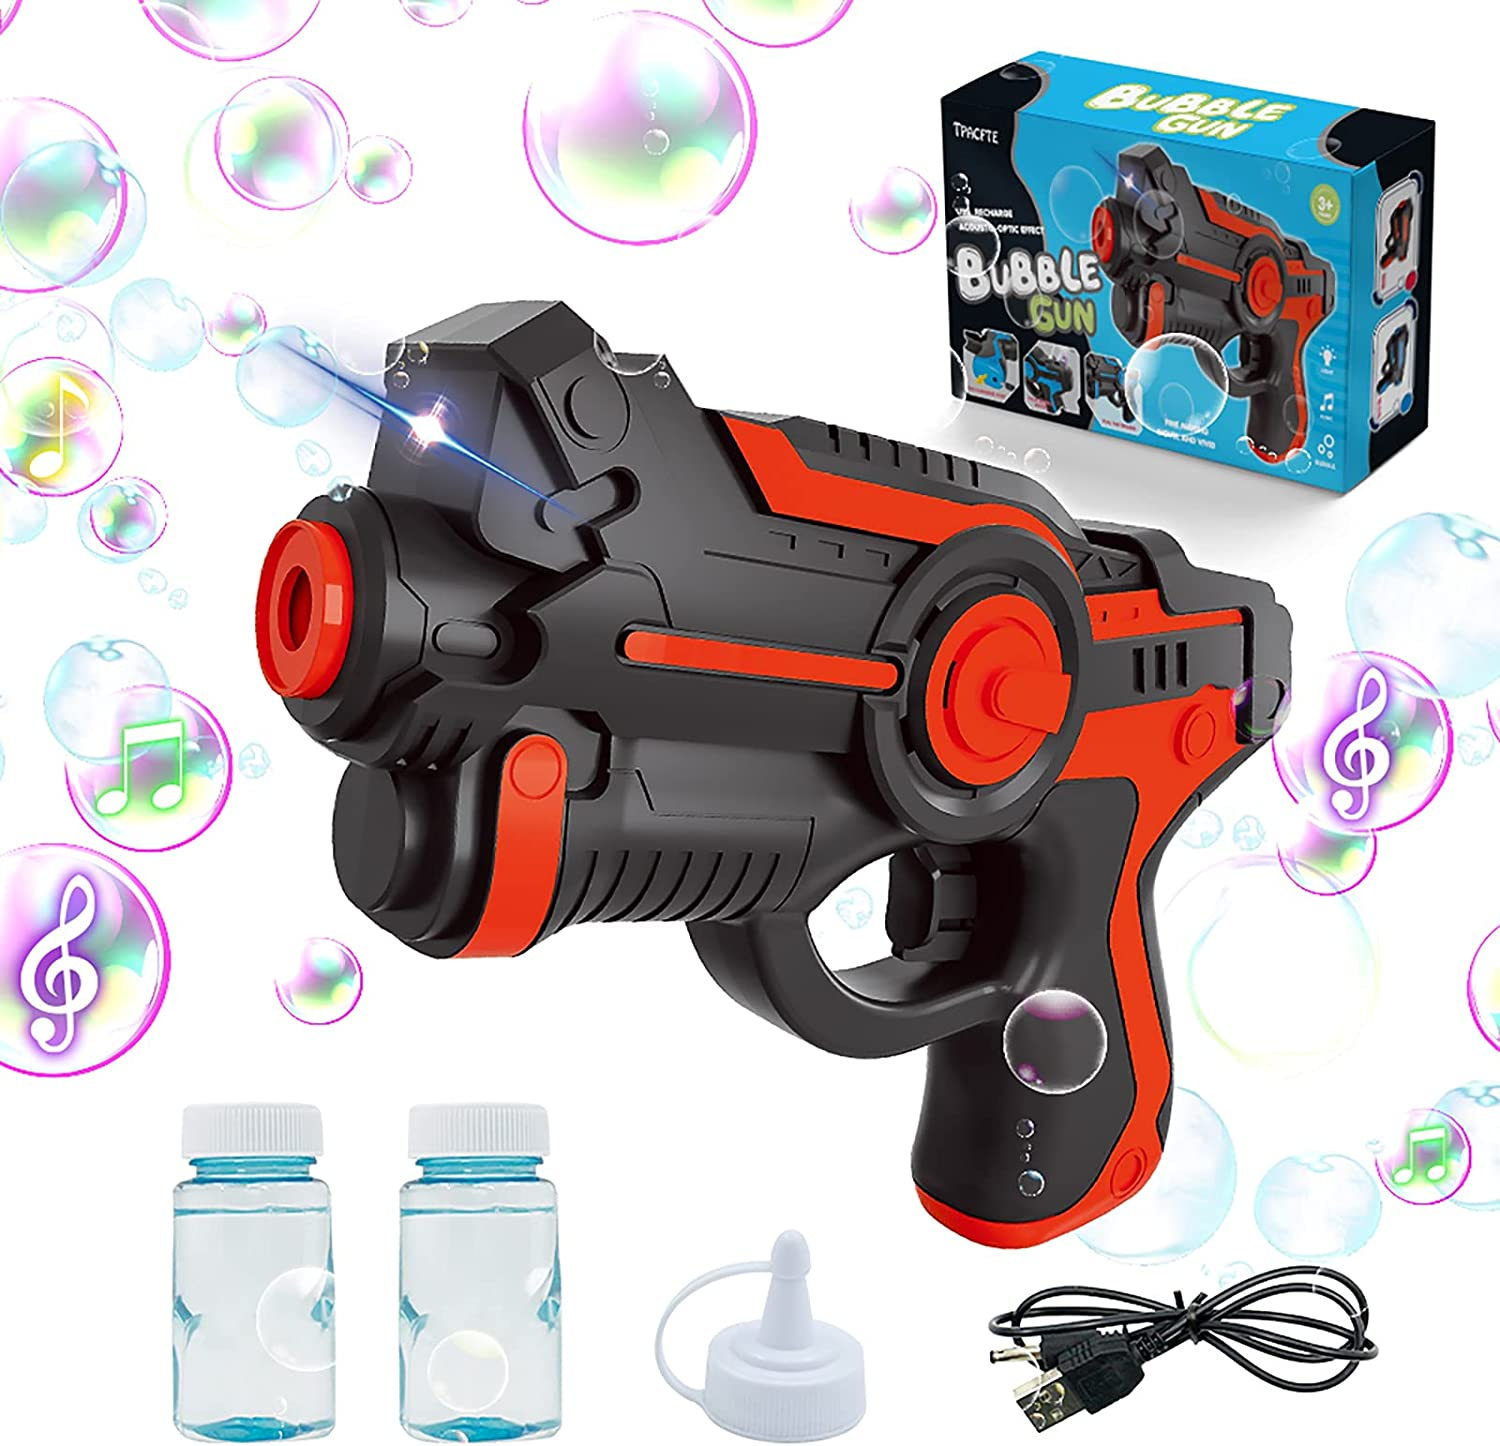 Bubble Guns for Kids Maker Excellent Solution Bu 3000+ Discount mail order with